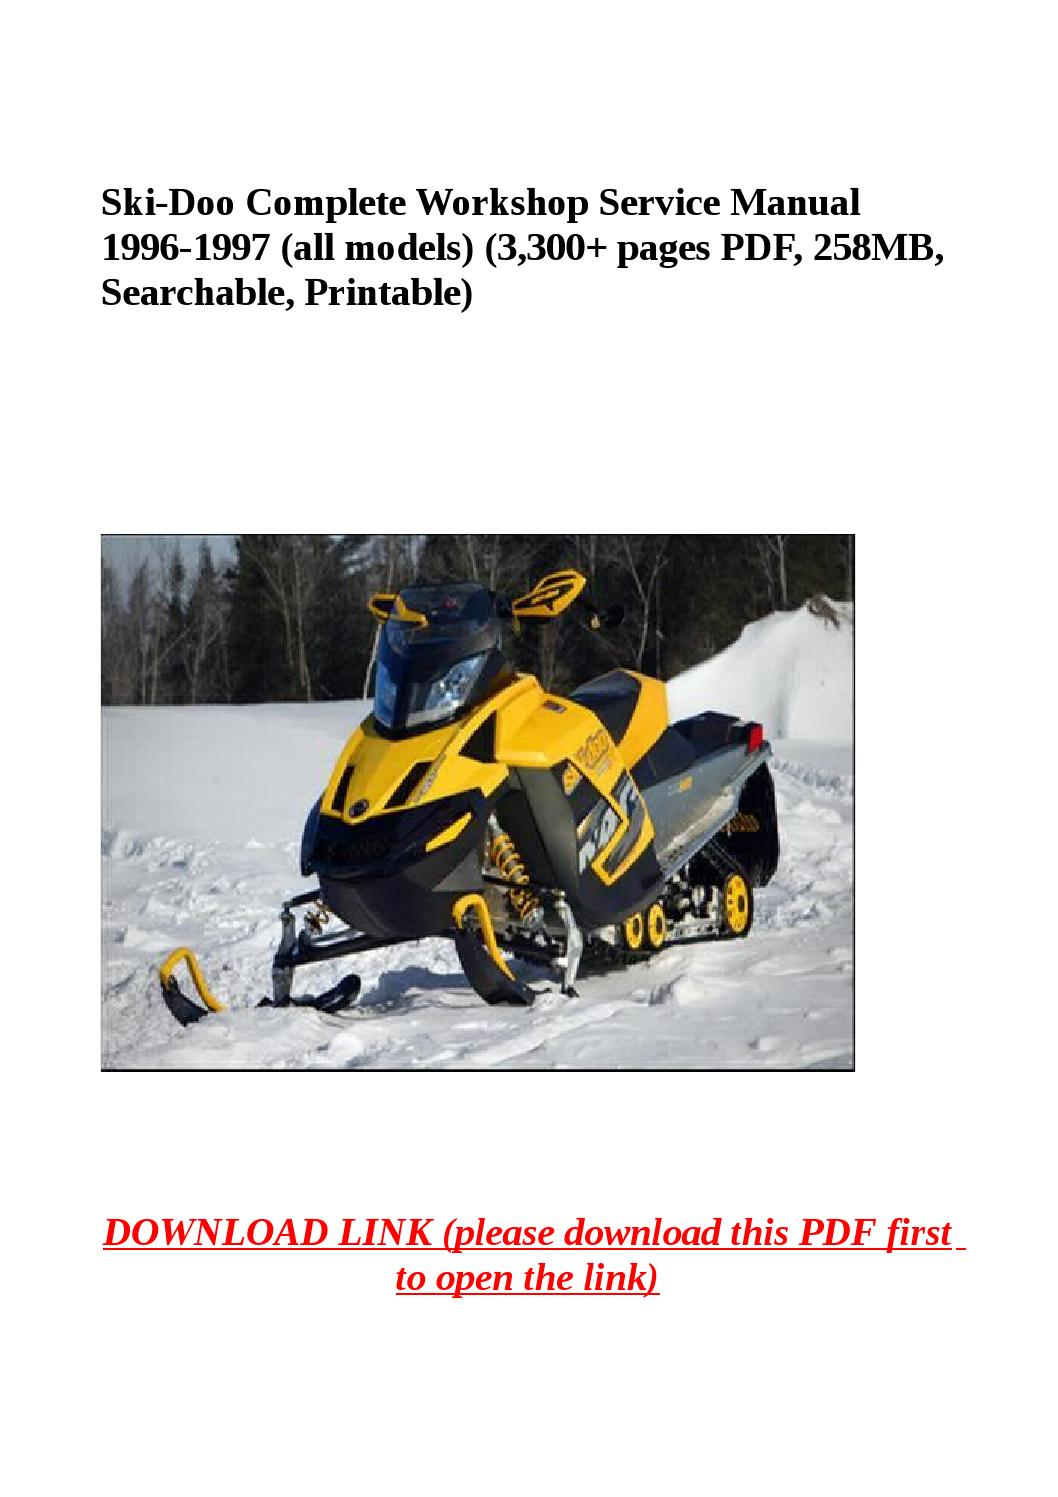 hight resolution of ski doo complete workshop service manual 1996 1997 all models rh issuu com 1997 ski